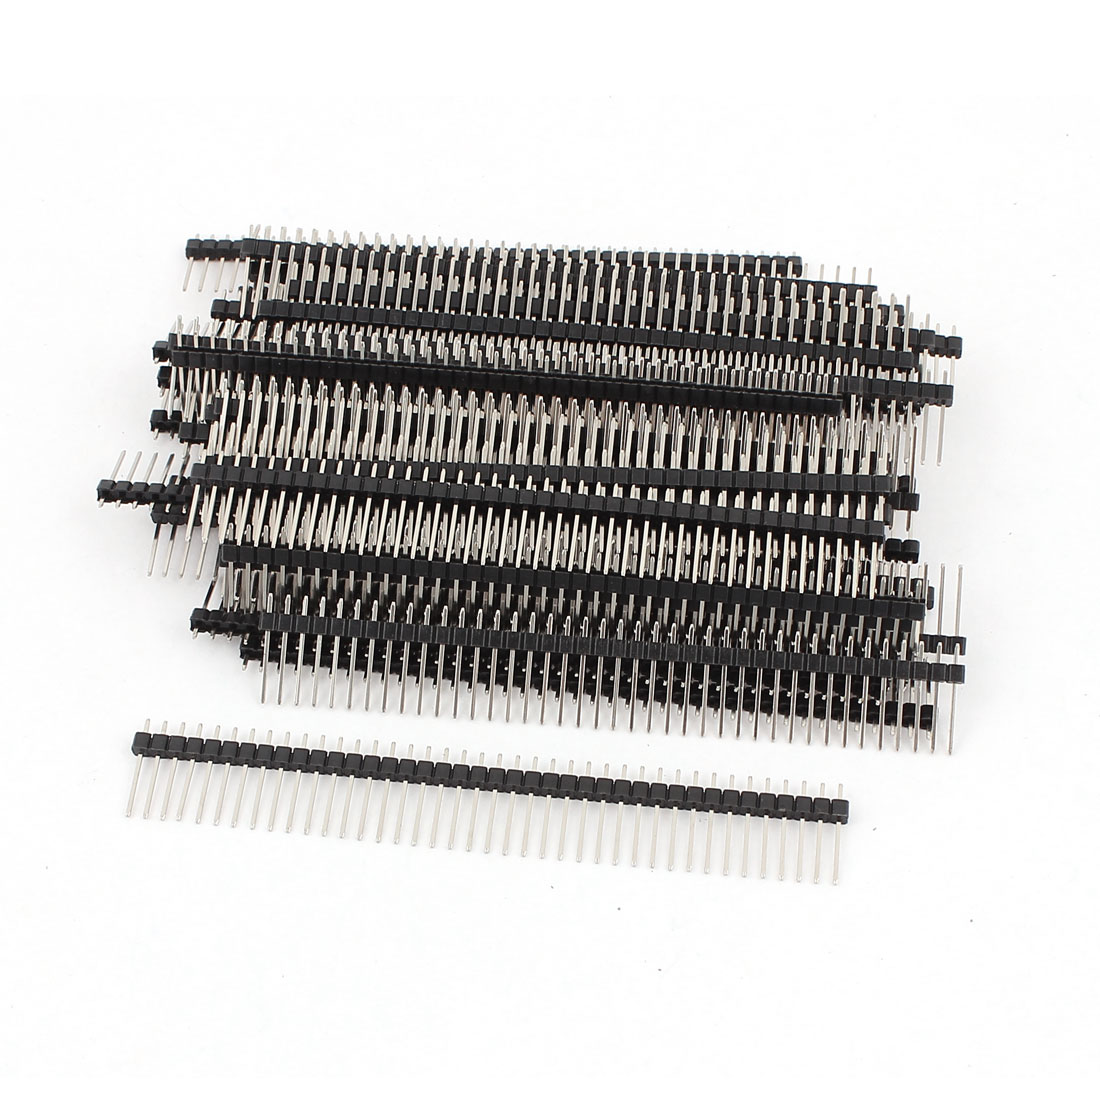 40pcs PBC Mount 40 Pin 2.54mm Pitch Breakable Straight Single Row Male Header Connector Strip